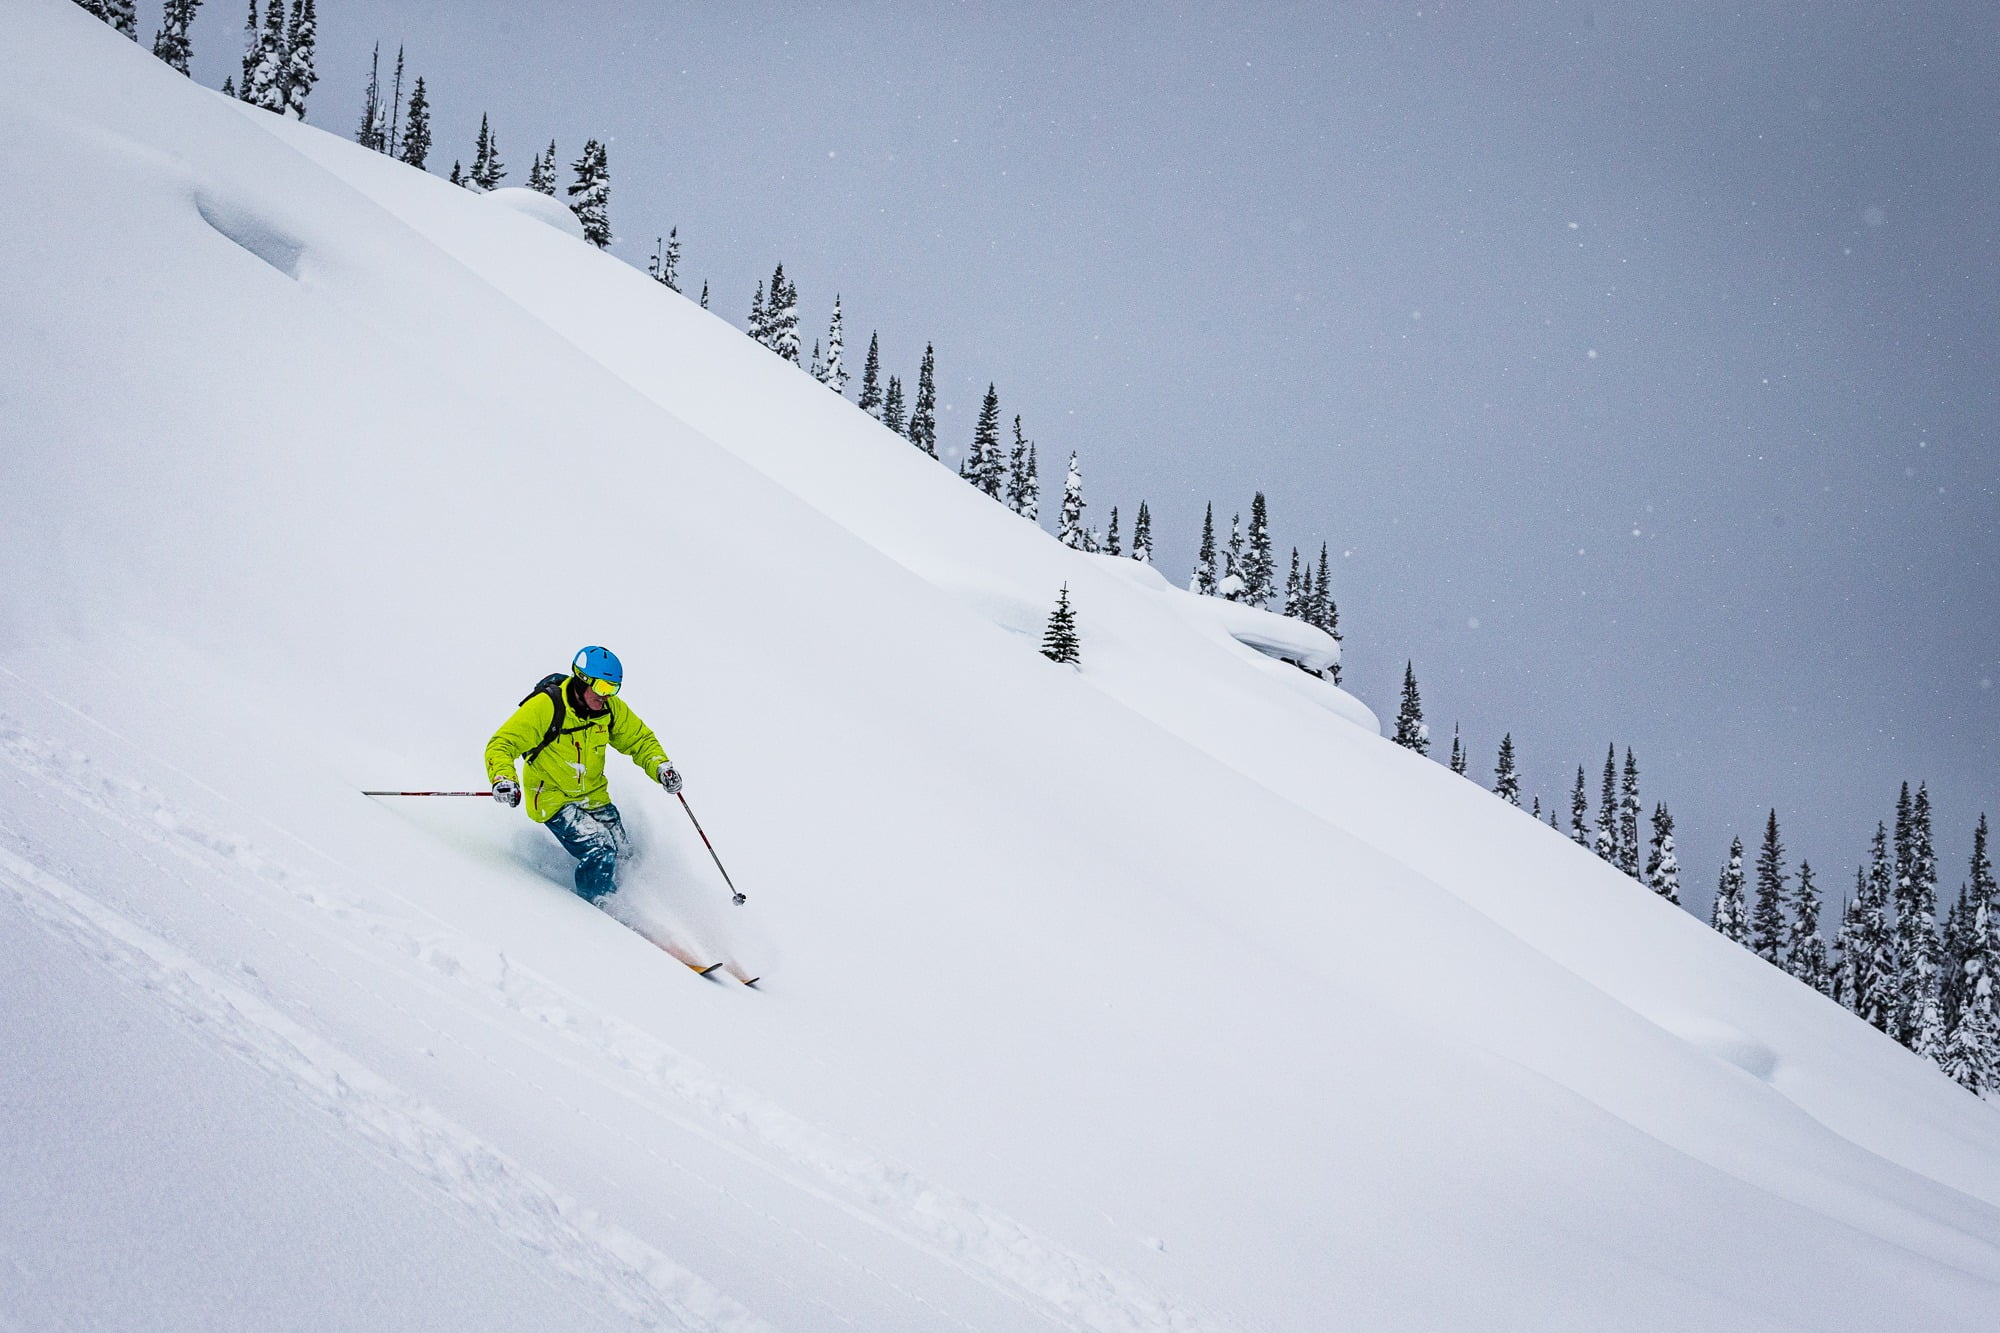 A Person Heli Skiing On A Snowy Day